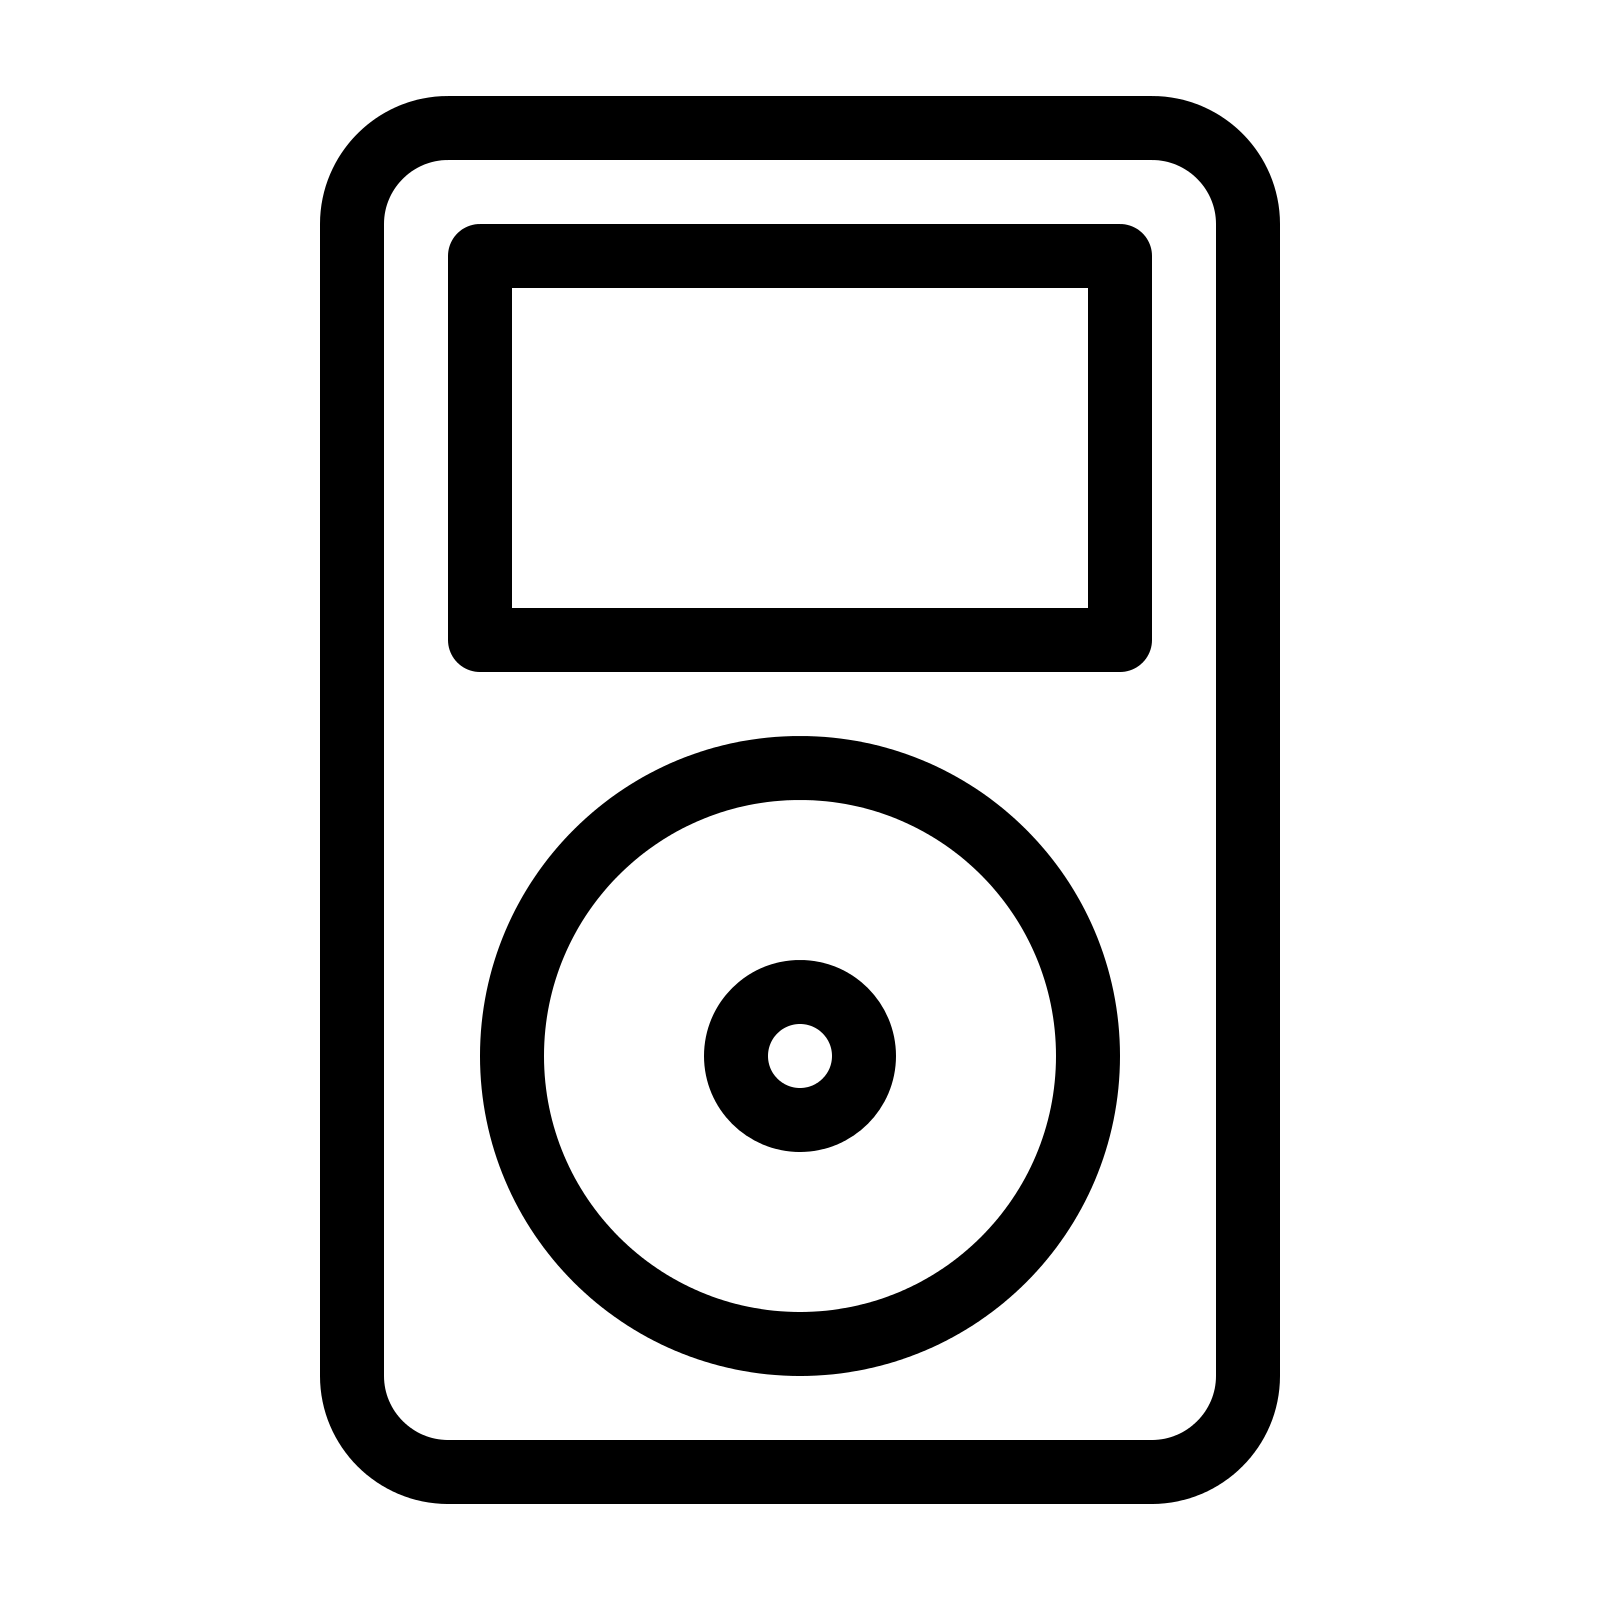 Technology clipart transparent. Ipod free collection download